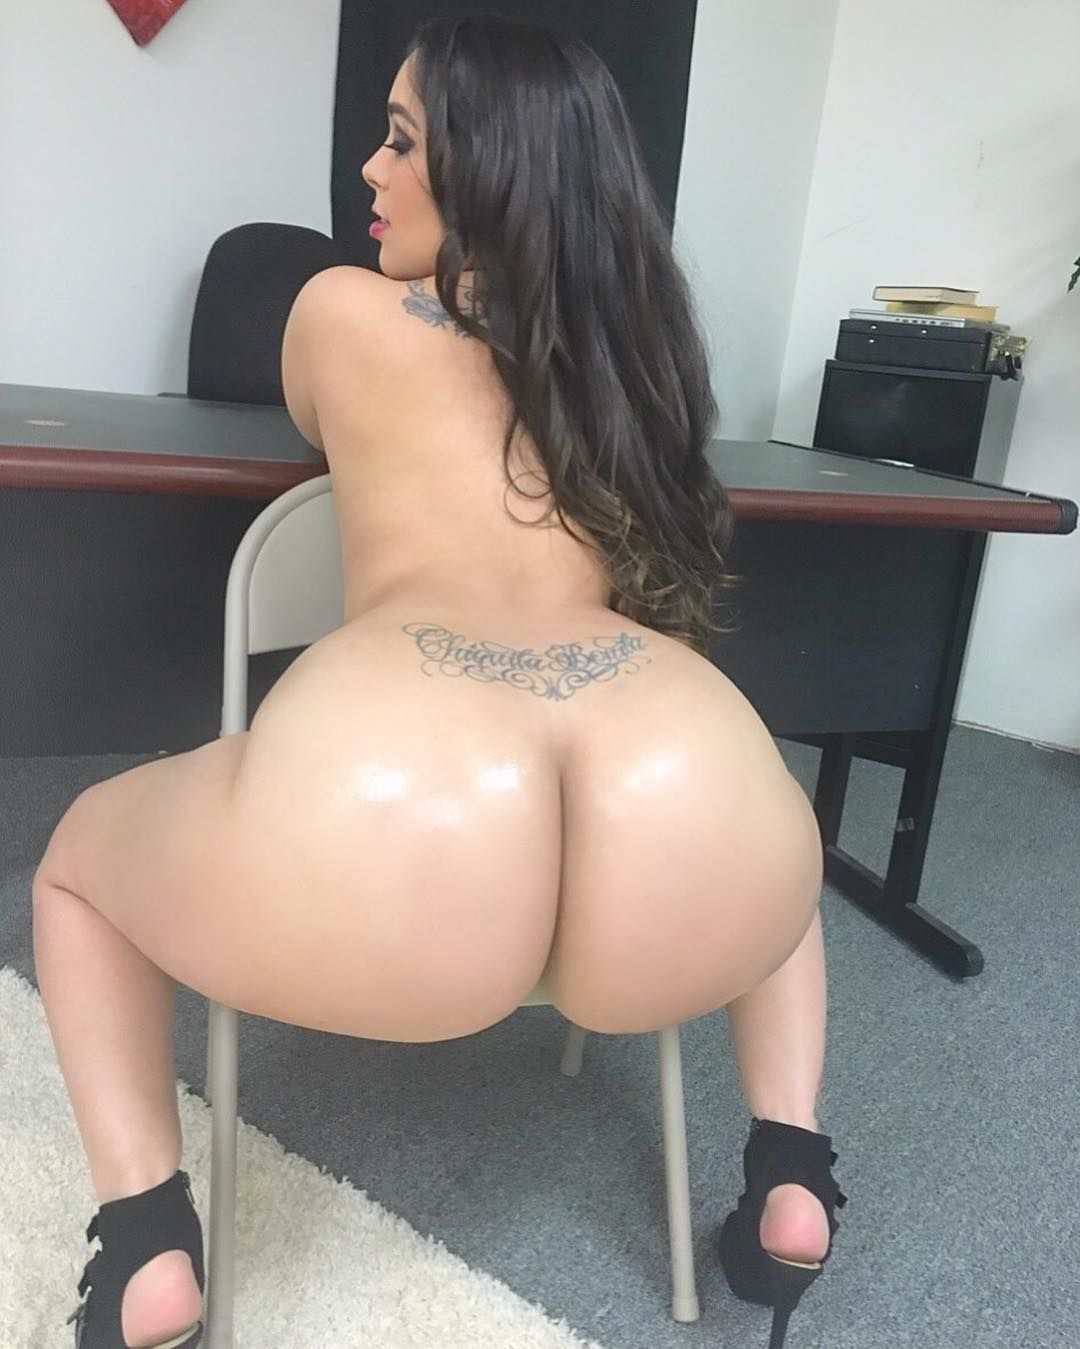 Thick Latina Big Ass Twerk Gets Cumshot Depotnick1